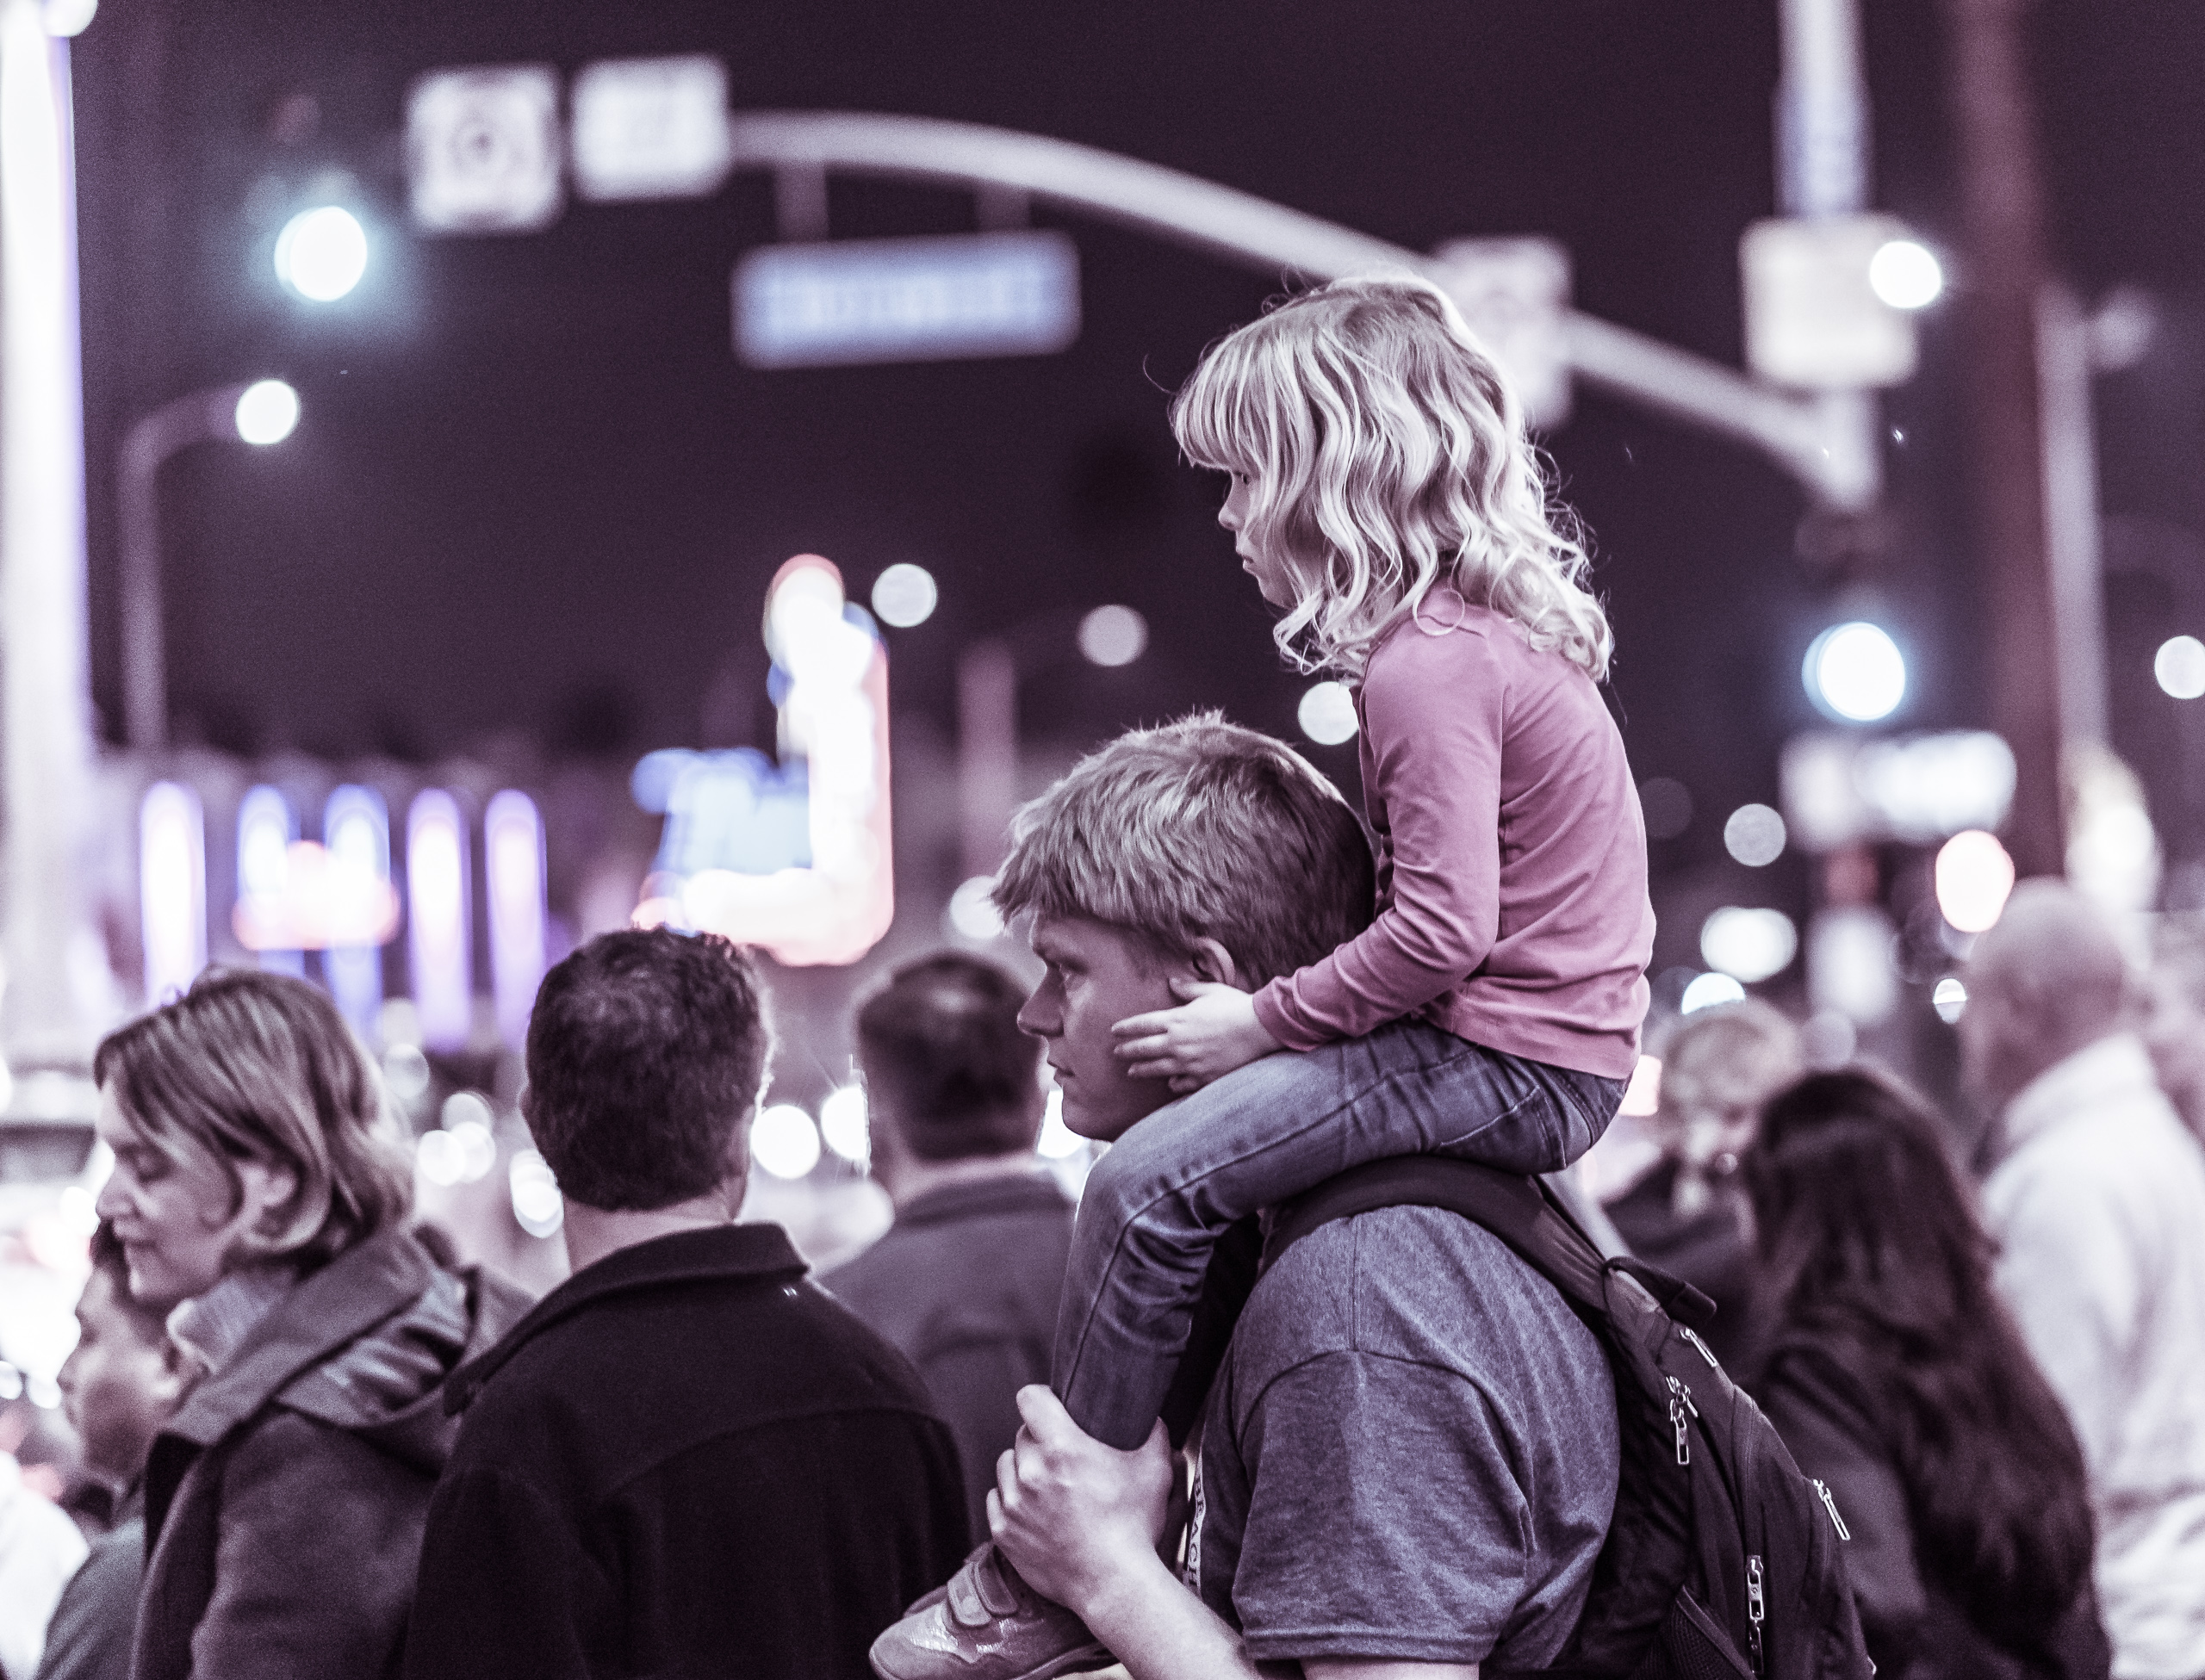 a young girl rides on her father's shoulders with her hands on his cheeks